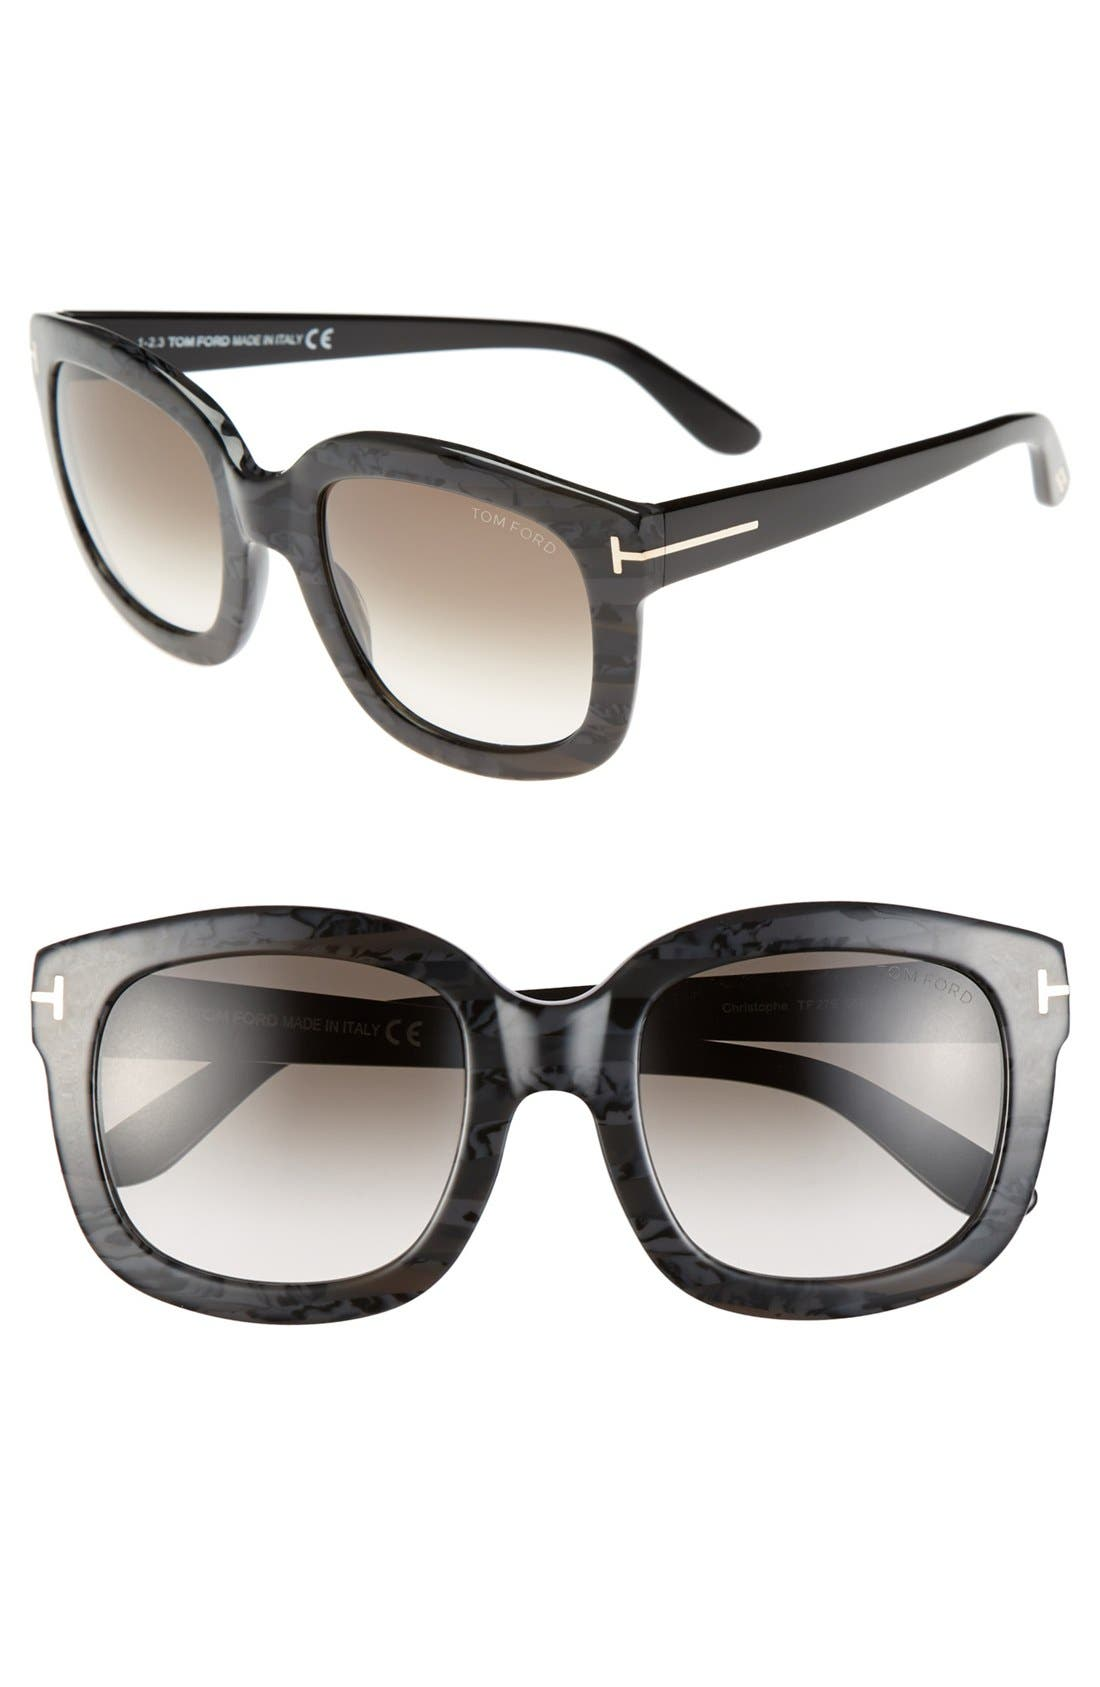 Main Image - Tom Ford 'Christophe' 53mm Sunglasses